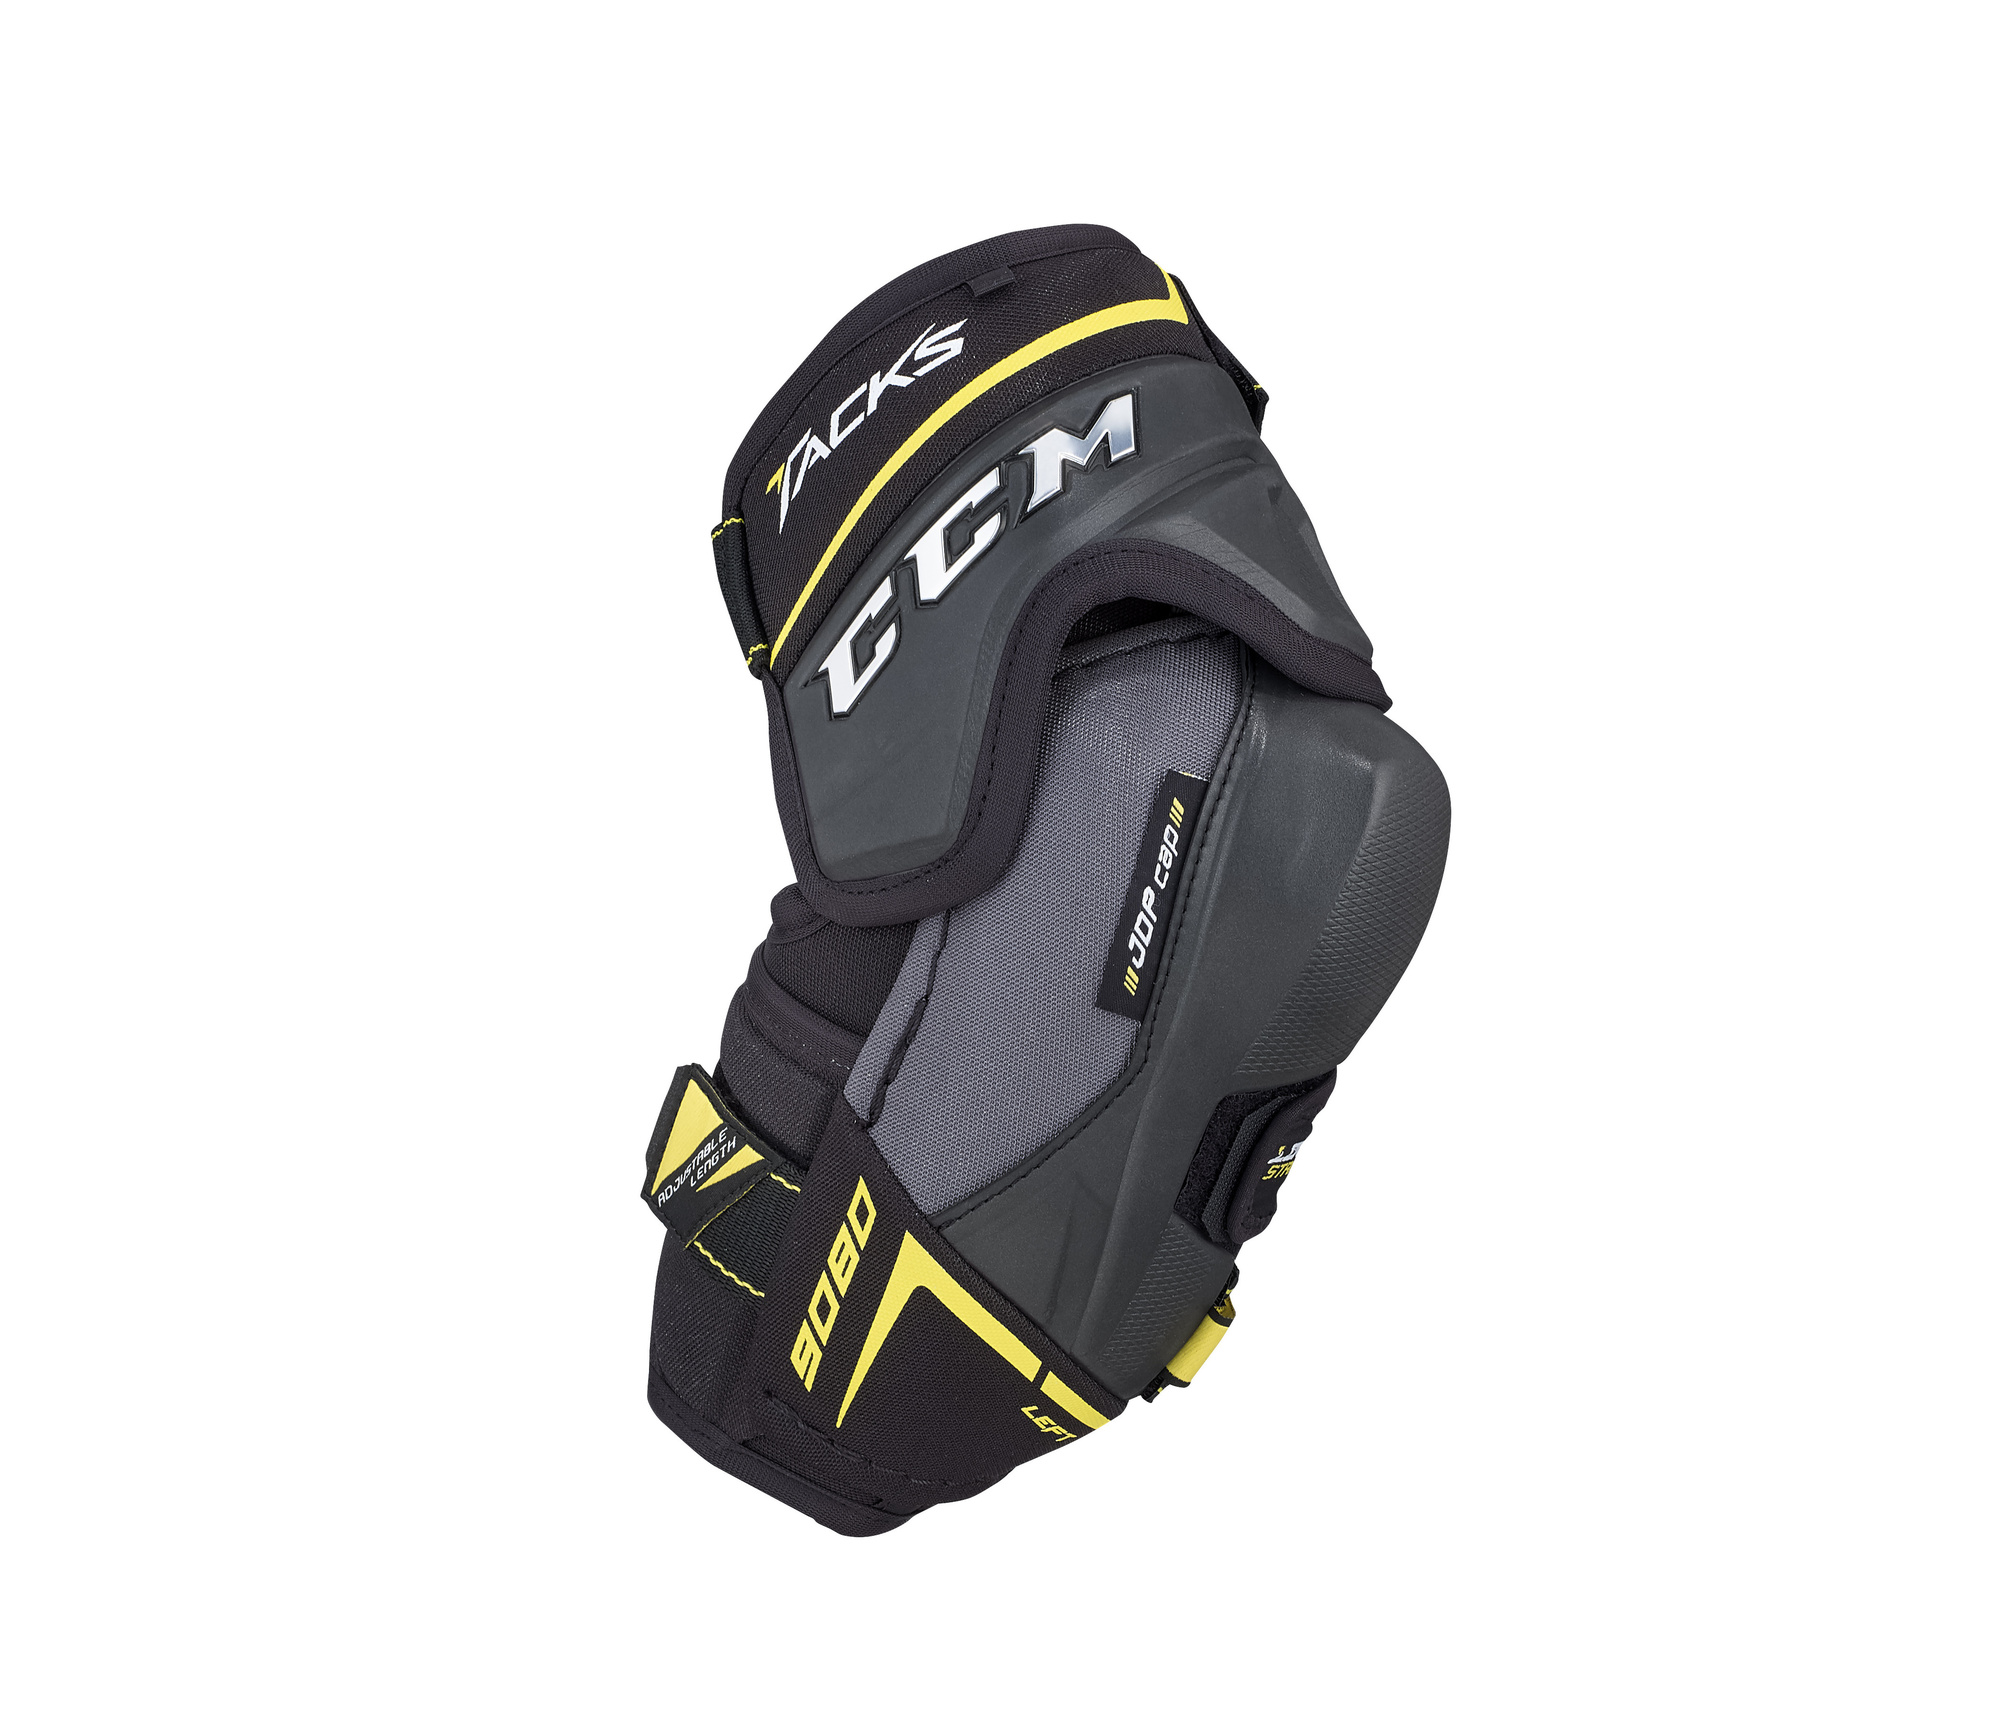 Lokty CCM Tacks 9080 SR, Senior, XL